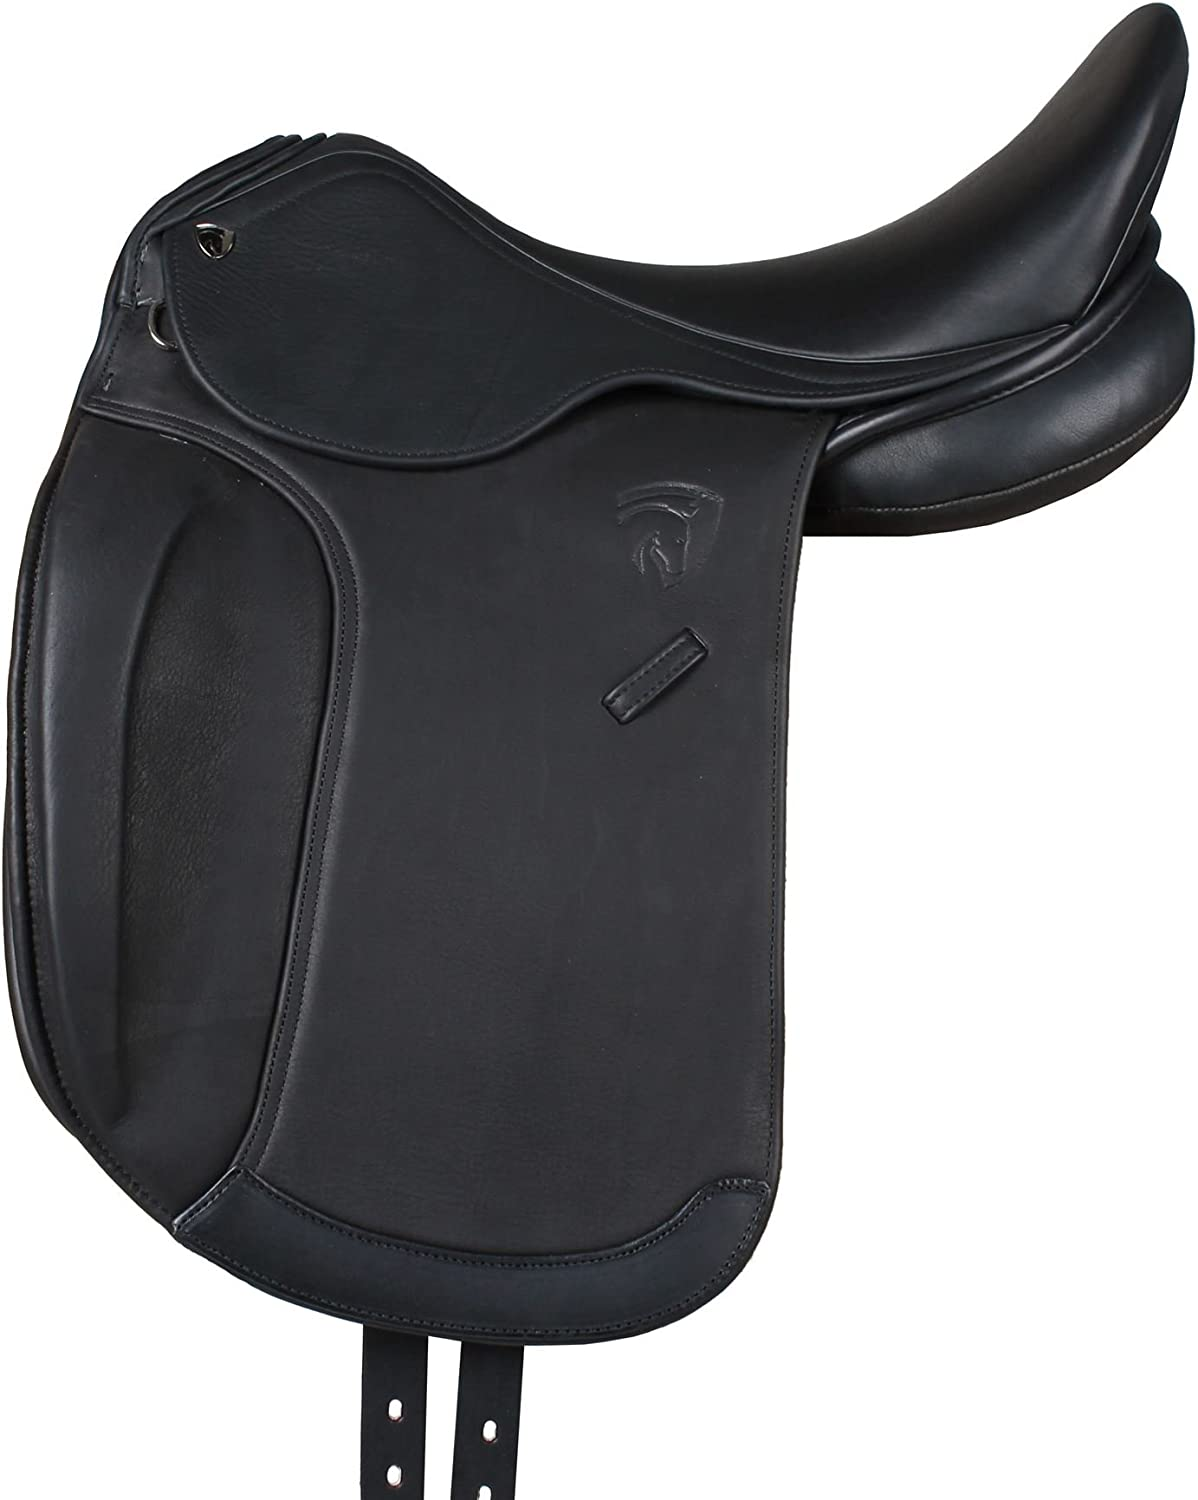 Horka Equestrian Cleopatra Double Leather Soft Grip Seat Dressage Saddle